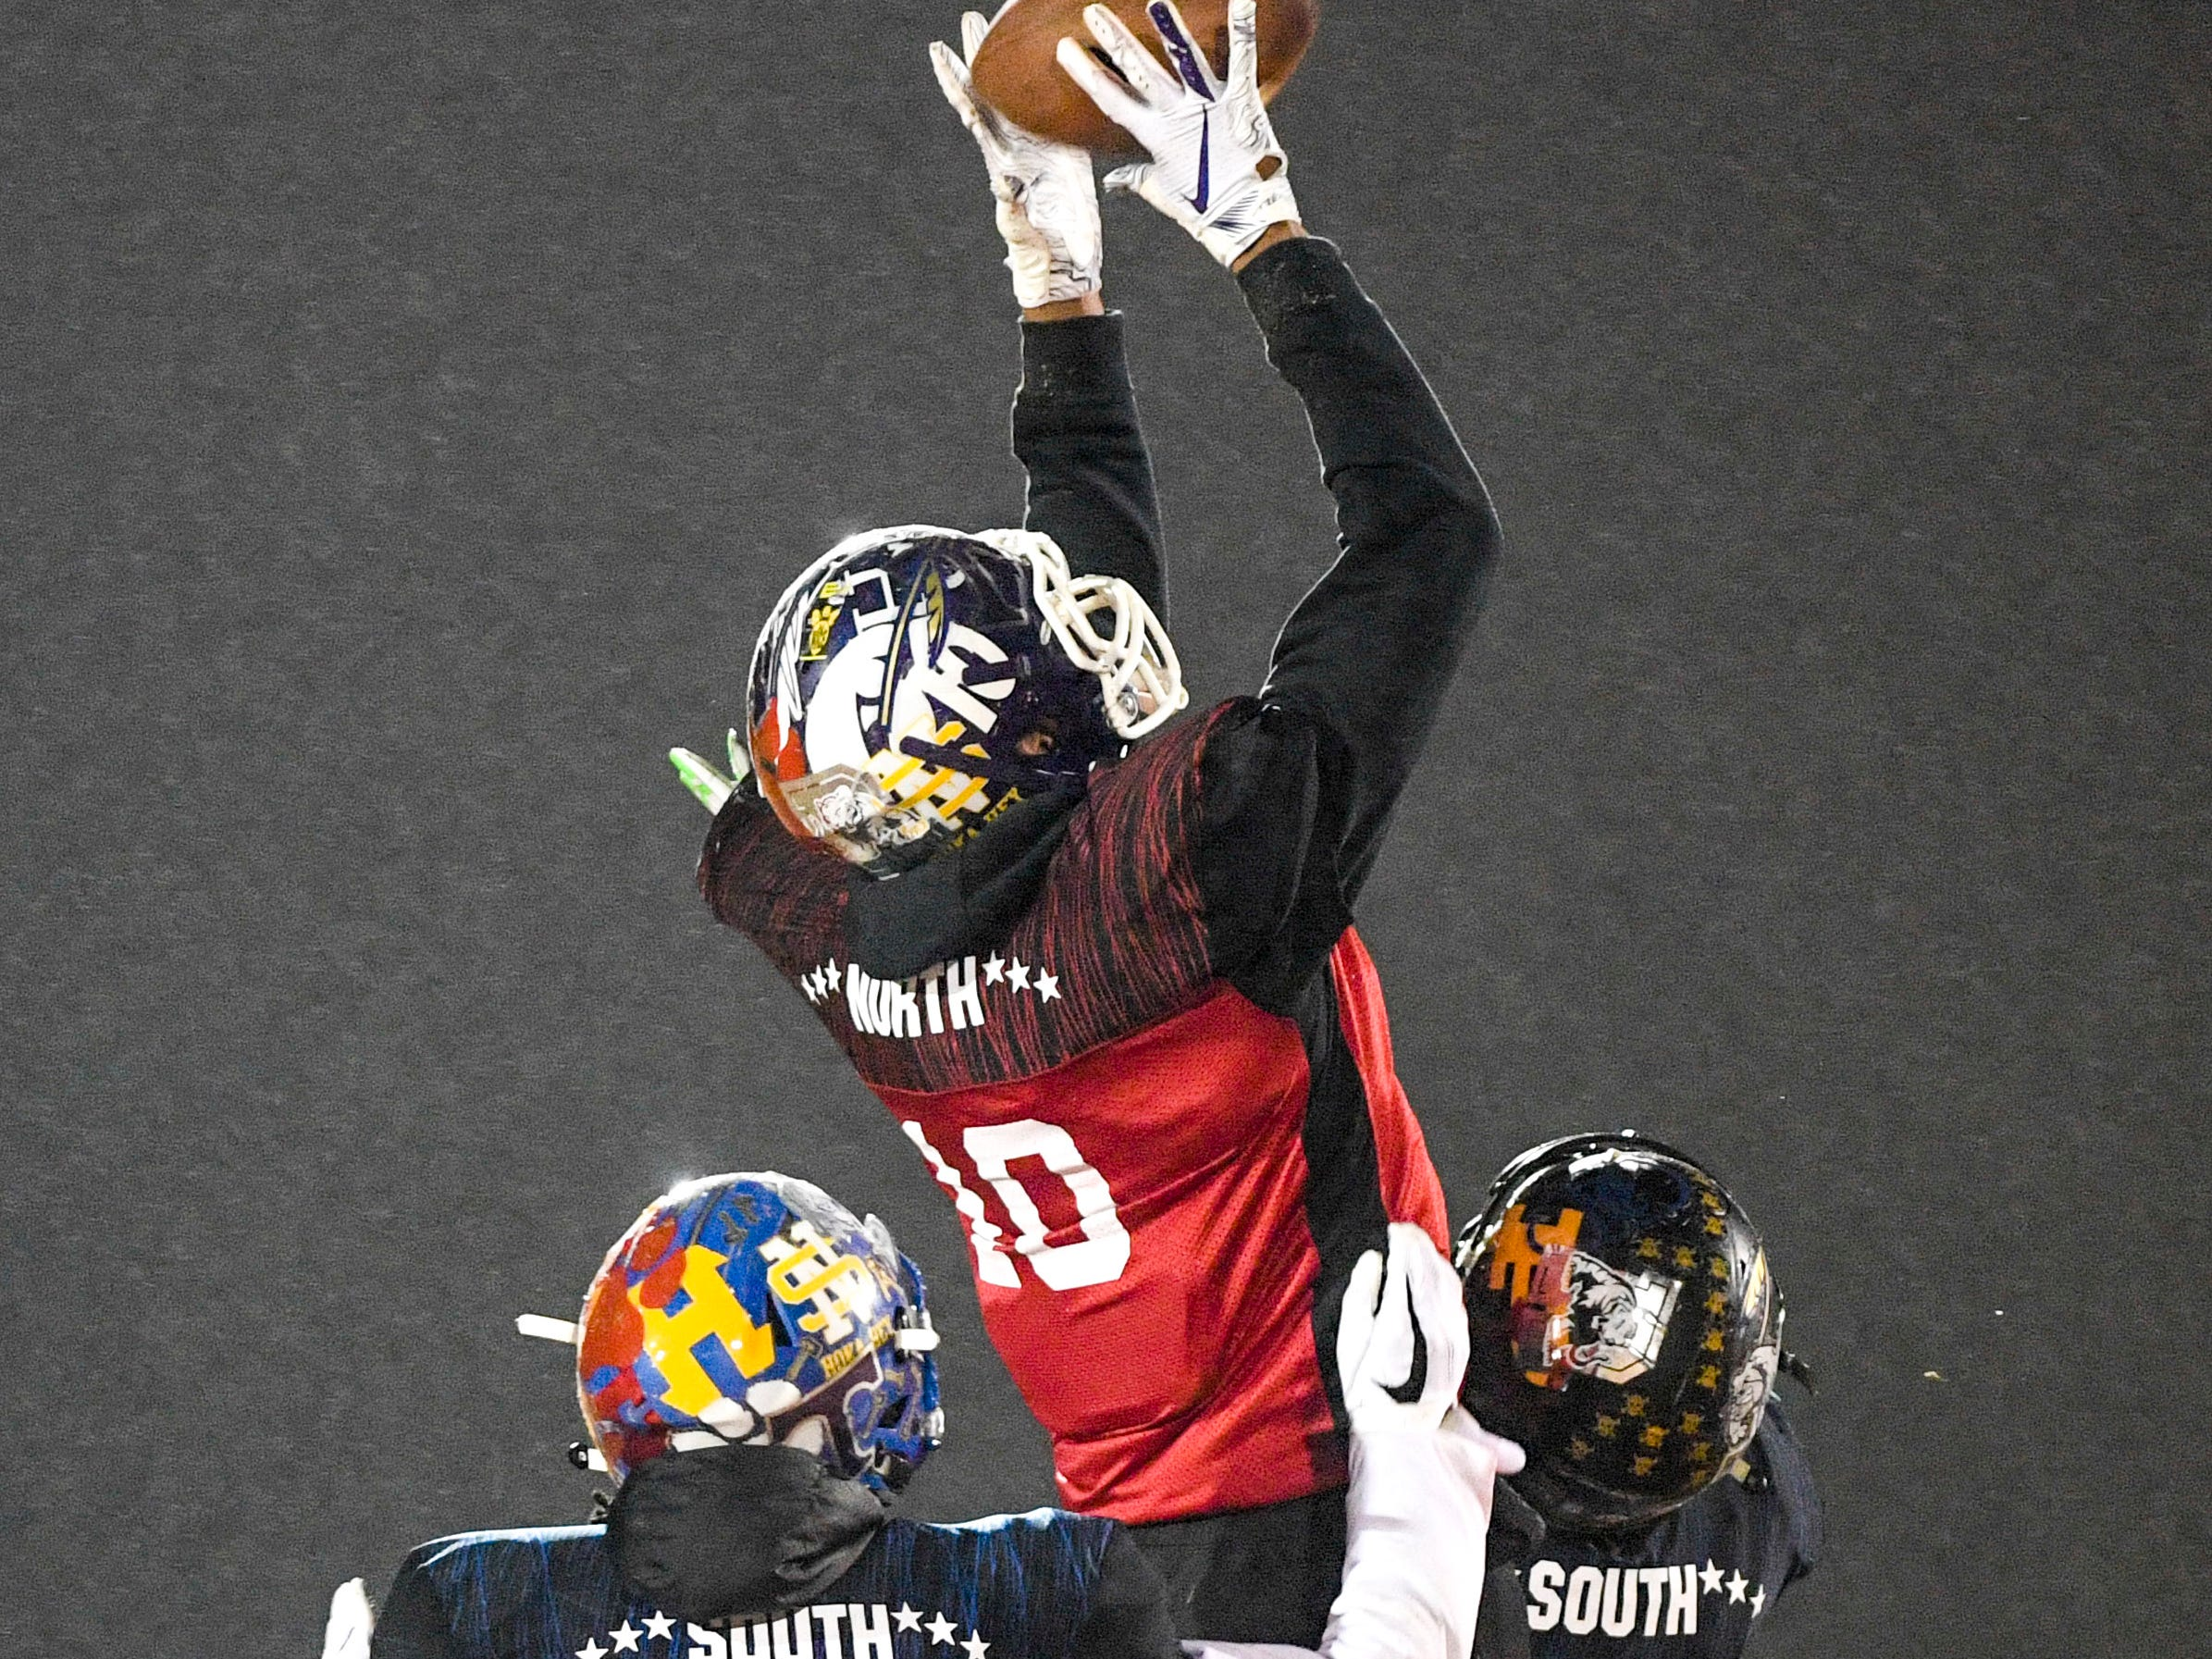 Haywood Co's Taylor Shield's (10) leaps to catch a pass during the West Tennessee All-Star football game at University School of Jackson in Jackson, Tenn., on Friday, Dec. 7, 2018.